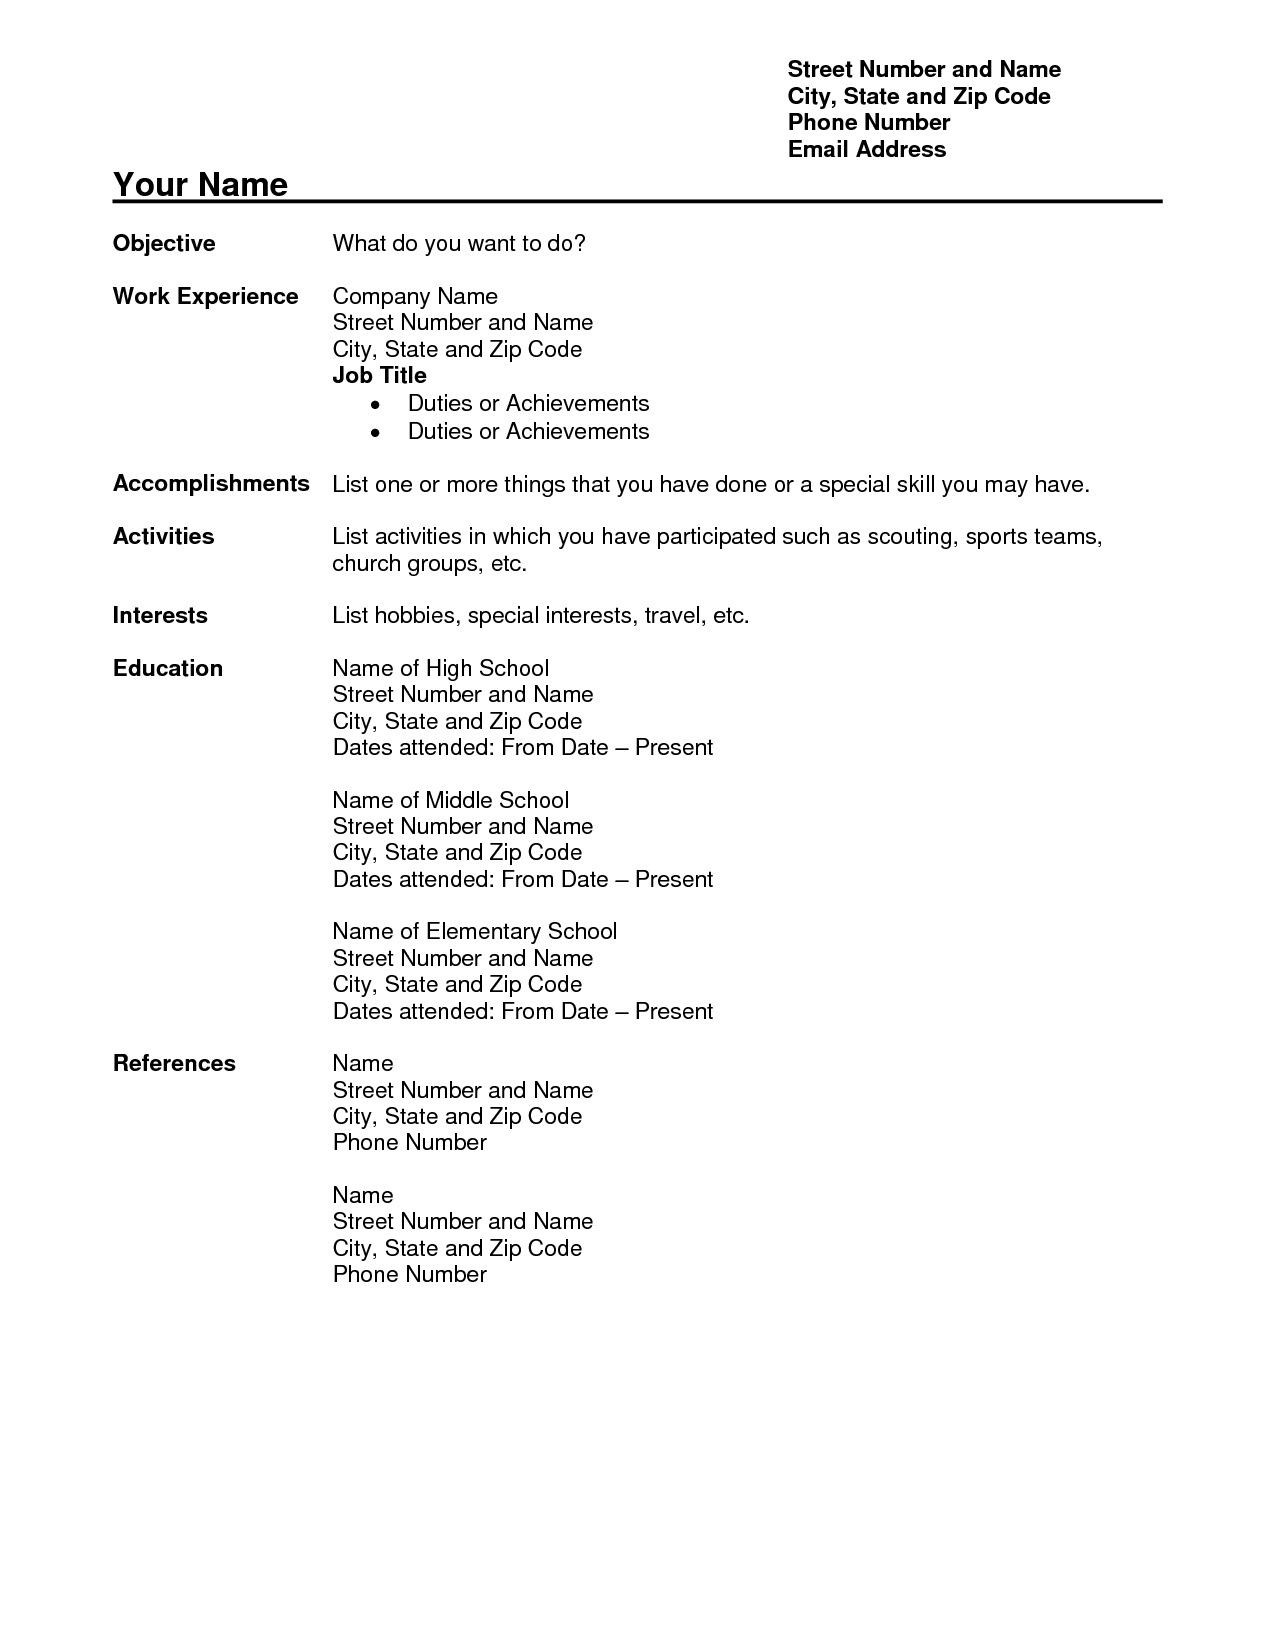 Free Teacher Resume Templates Download Free Teacher Resume Templates  Download, Free Teacher Resume Templates Microsoft  Free Resume Templates For Teachers